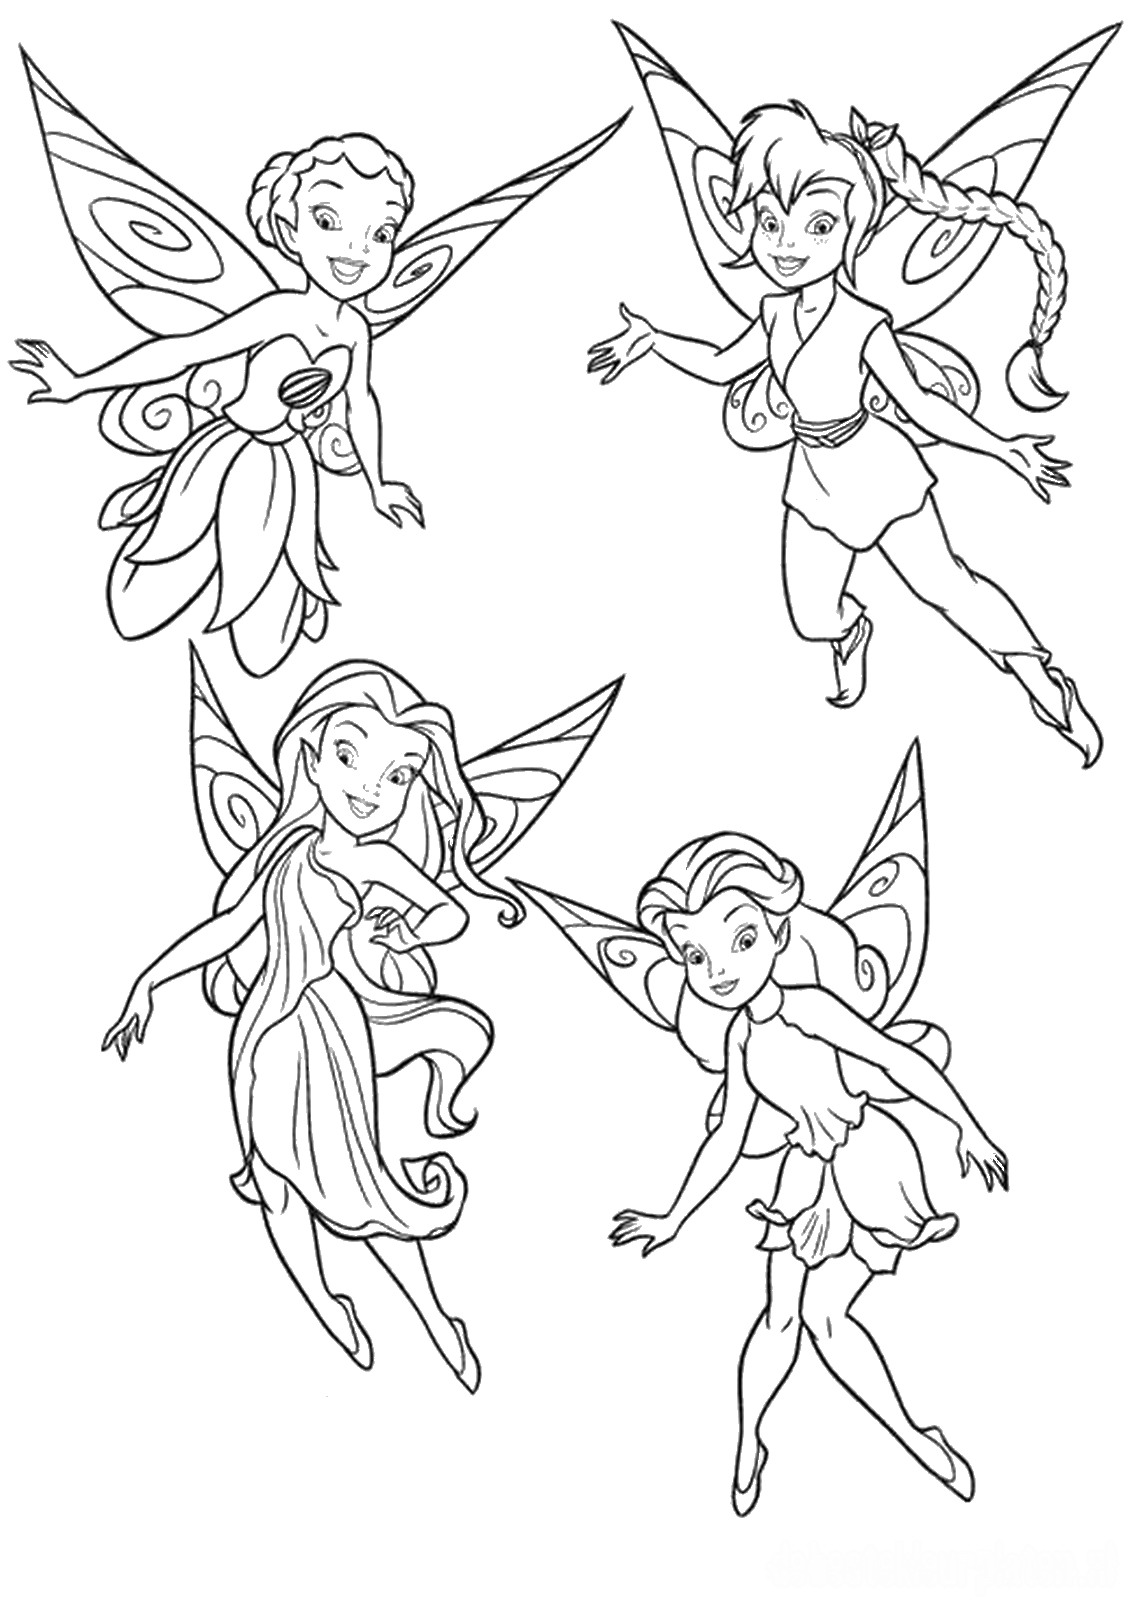 tinkerbell pictures to color tinkerbell pictures to color free coloring pictures color to tinkerbell pictures